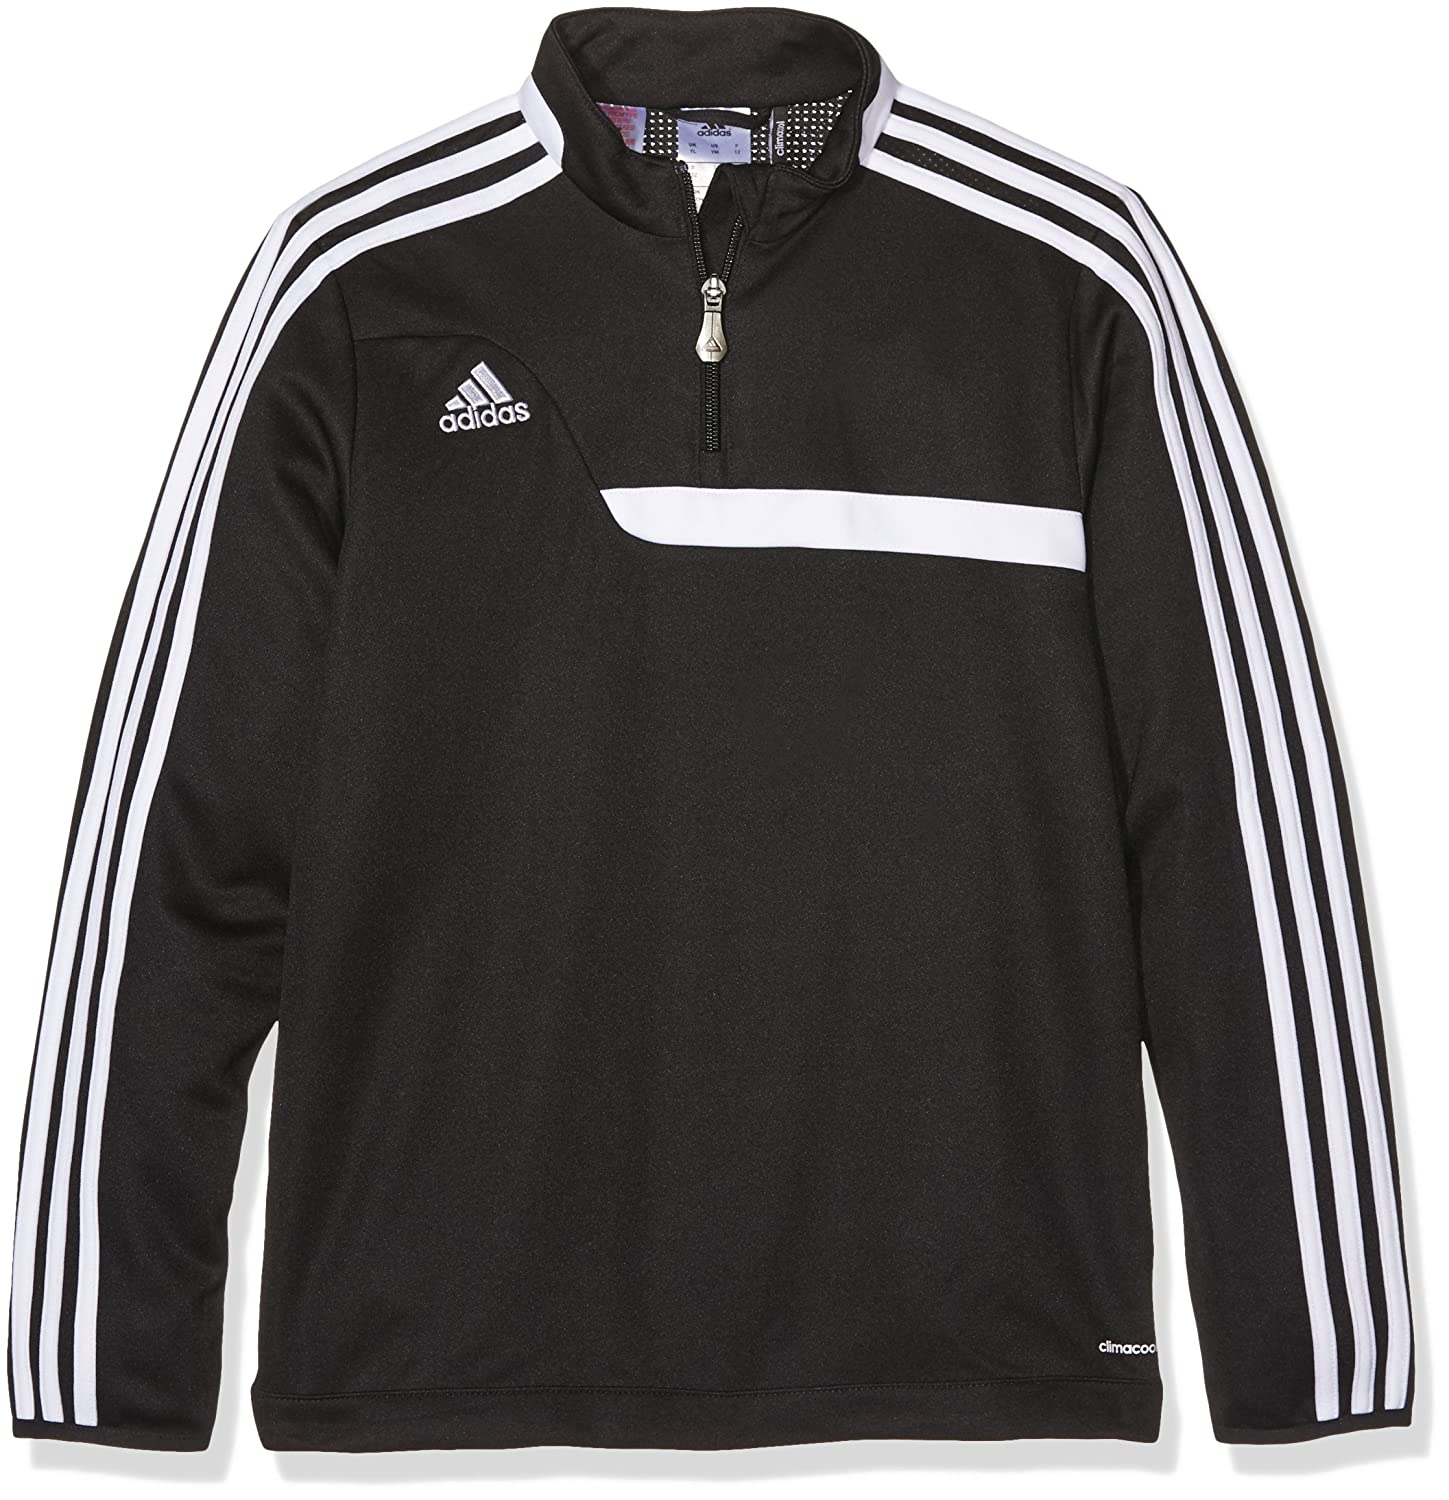 Adidas Kinder Bekleidung Trainings Top Tiro 13 Young